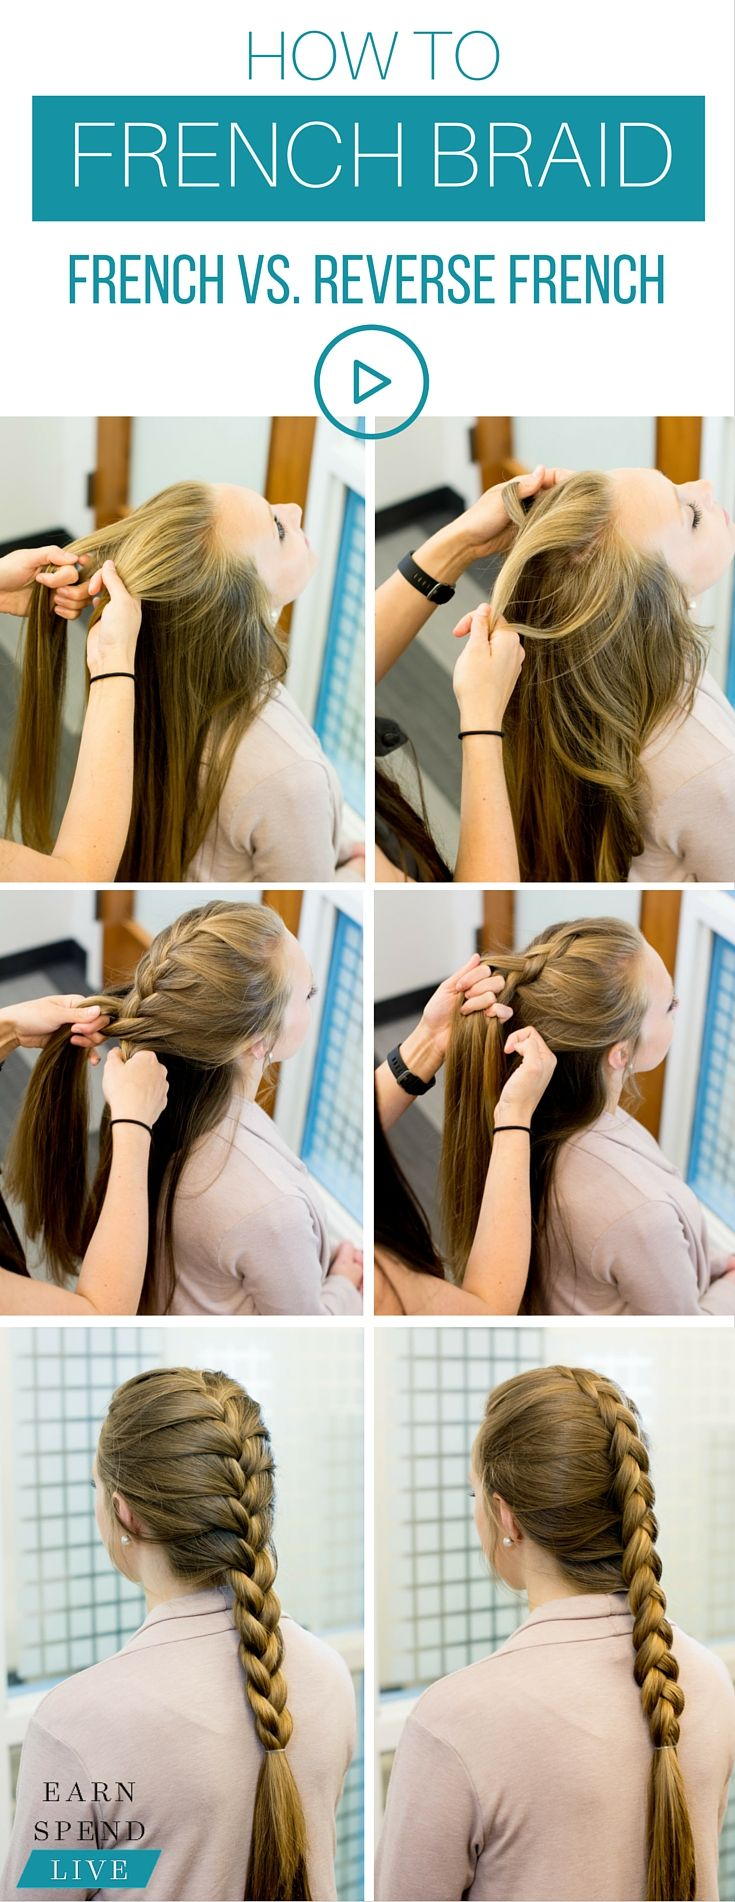 French vs. Reverse French Braid: a how-to video breakdown of each braid from start to finish ----->